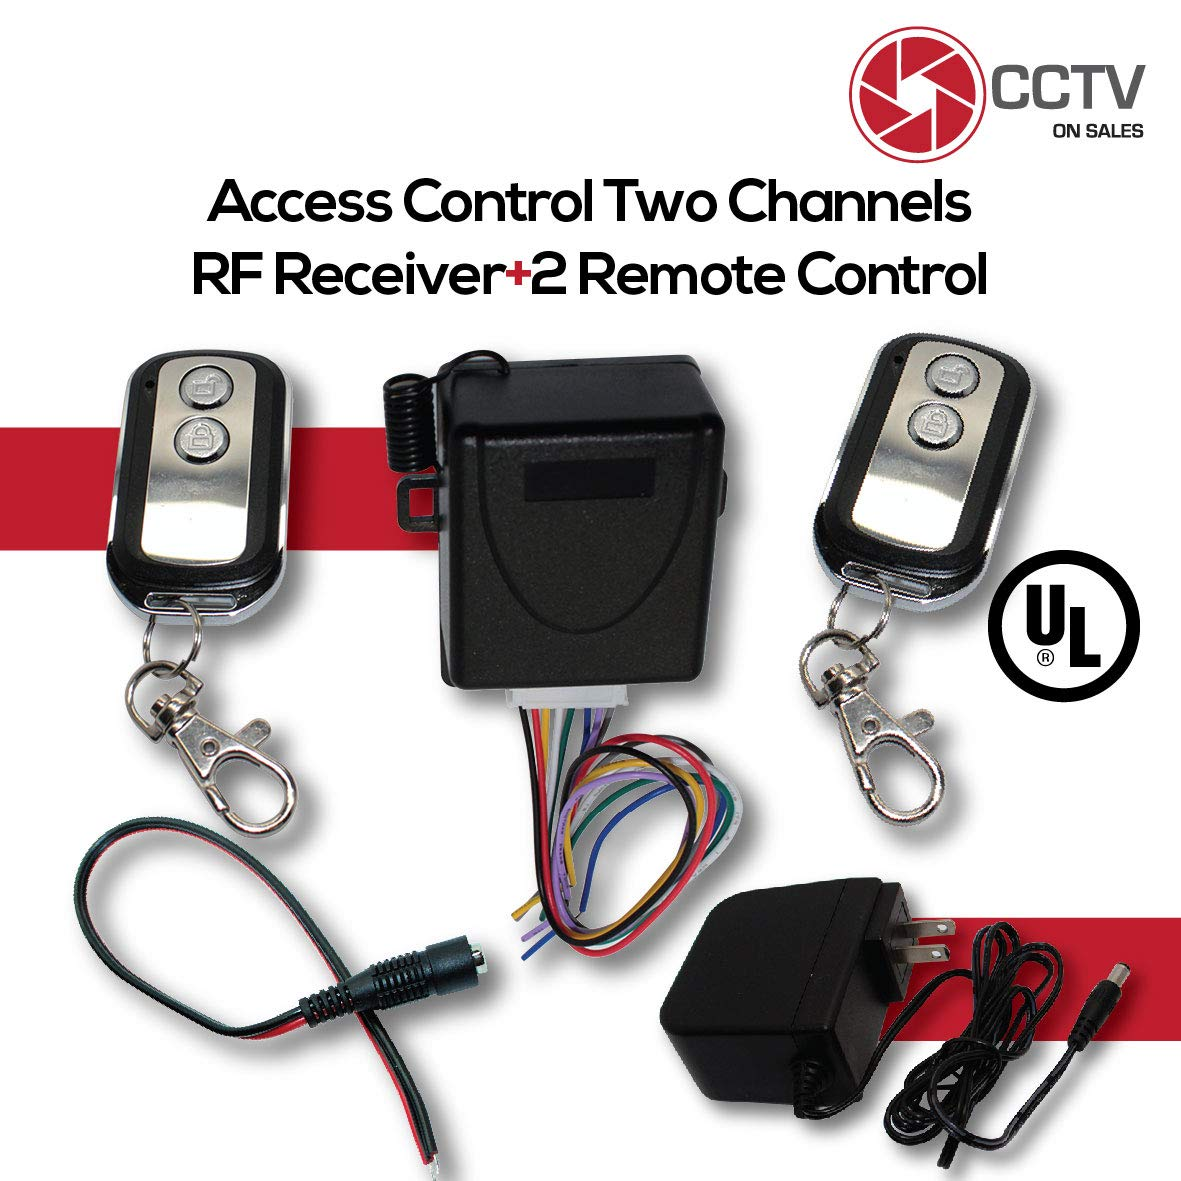 Access Control 2 Mini 315mhz Wireless Fixed Code Remotes with Two Channels RF Receiver Momentary Switch, One DC Power Plug Female Connector and One 12VDC 2Amps UL Certified Power Supply Kit